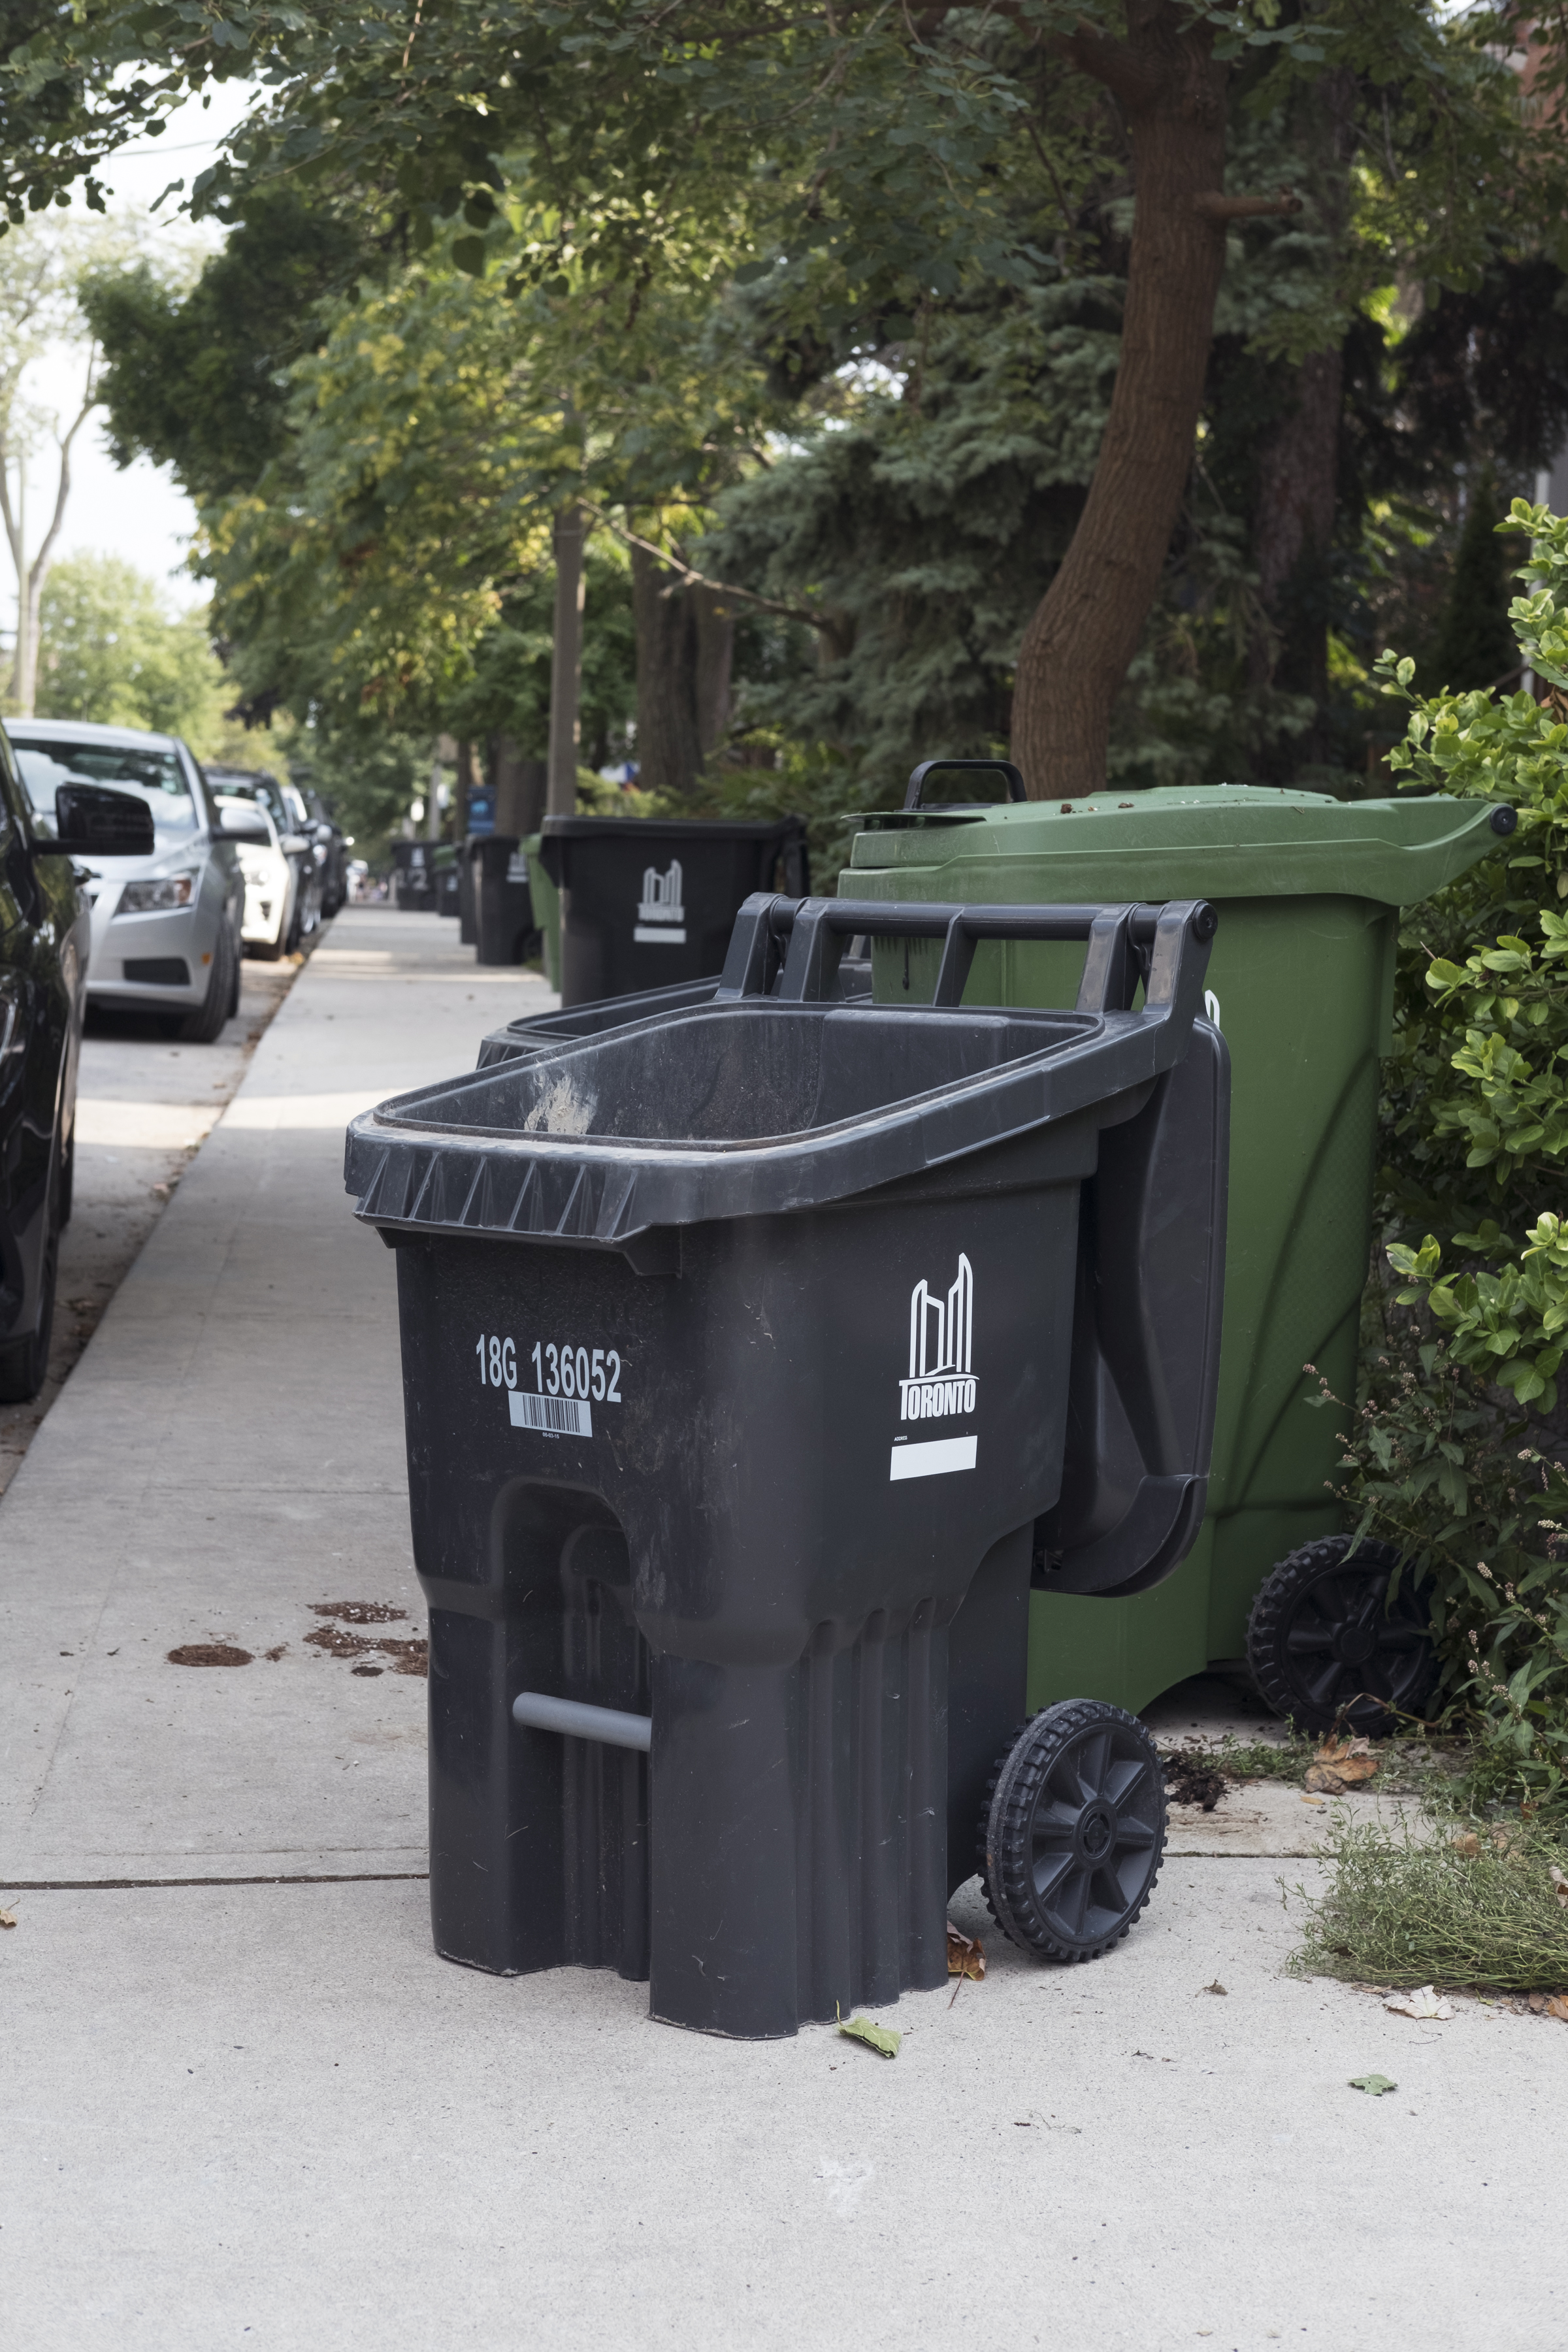 A City of Toronto garbage can blocking the sidewalk